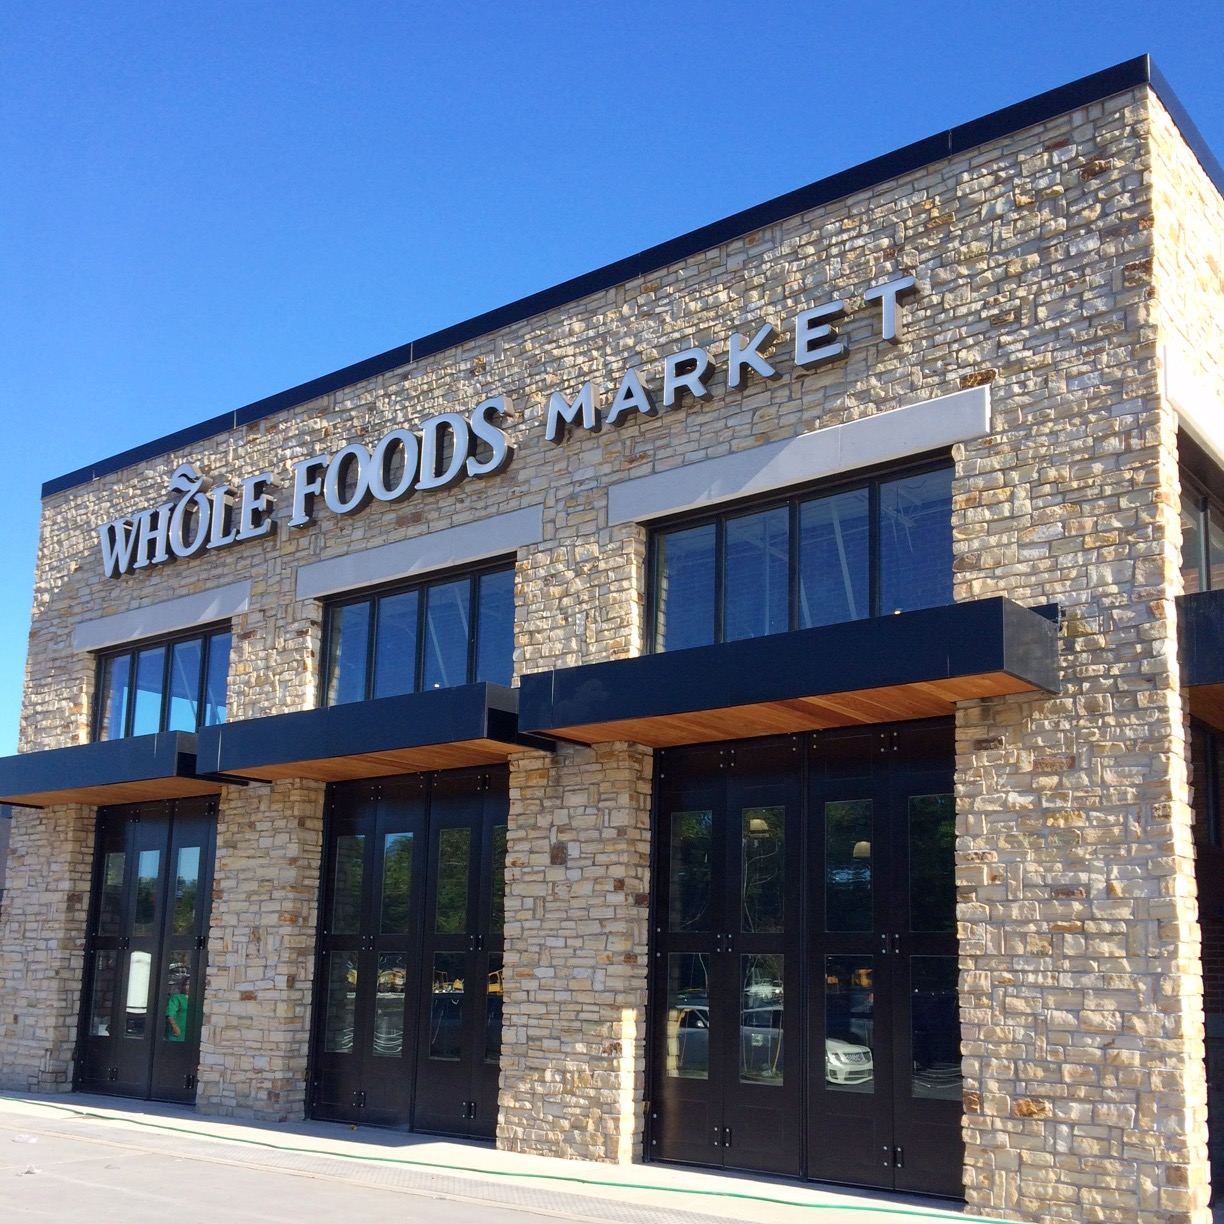 Whole Foods Market opens new store in Closter, New Jersey on October 19